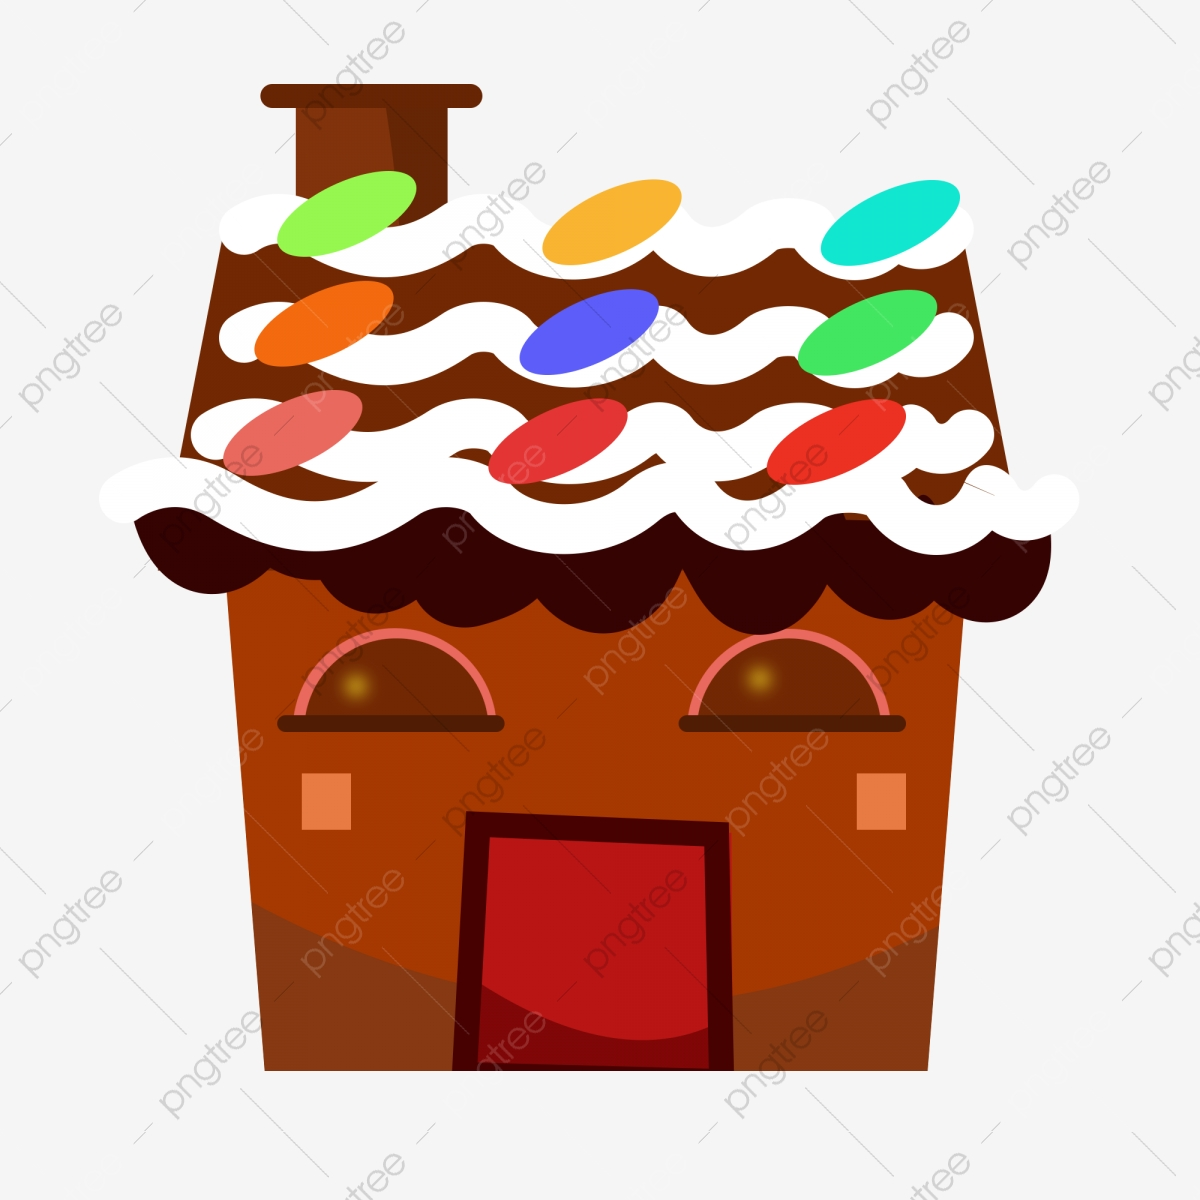 Christmas Gingerbread House Cartoon.Gingerbread House Color Christmas Hand Painted Illustration